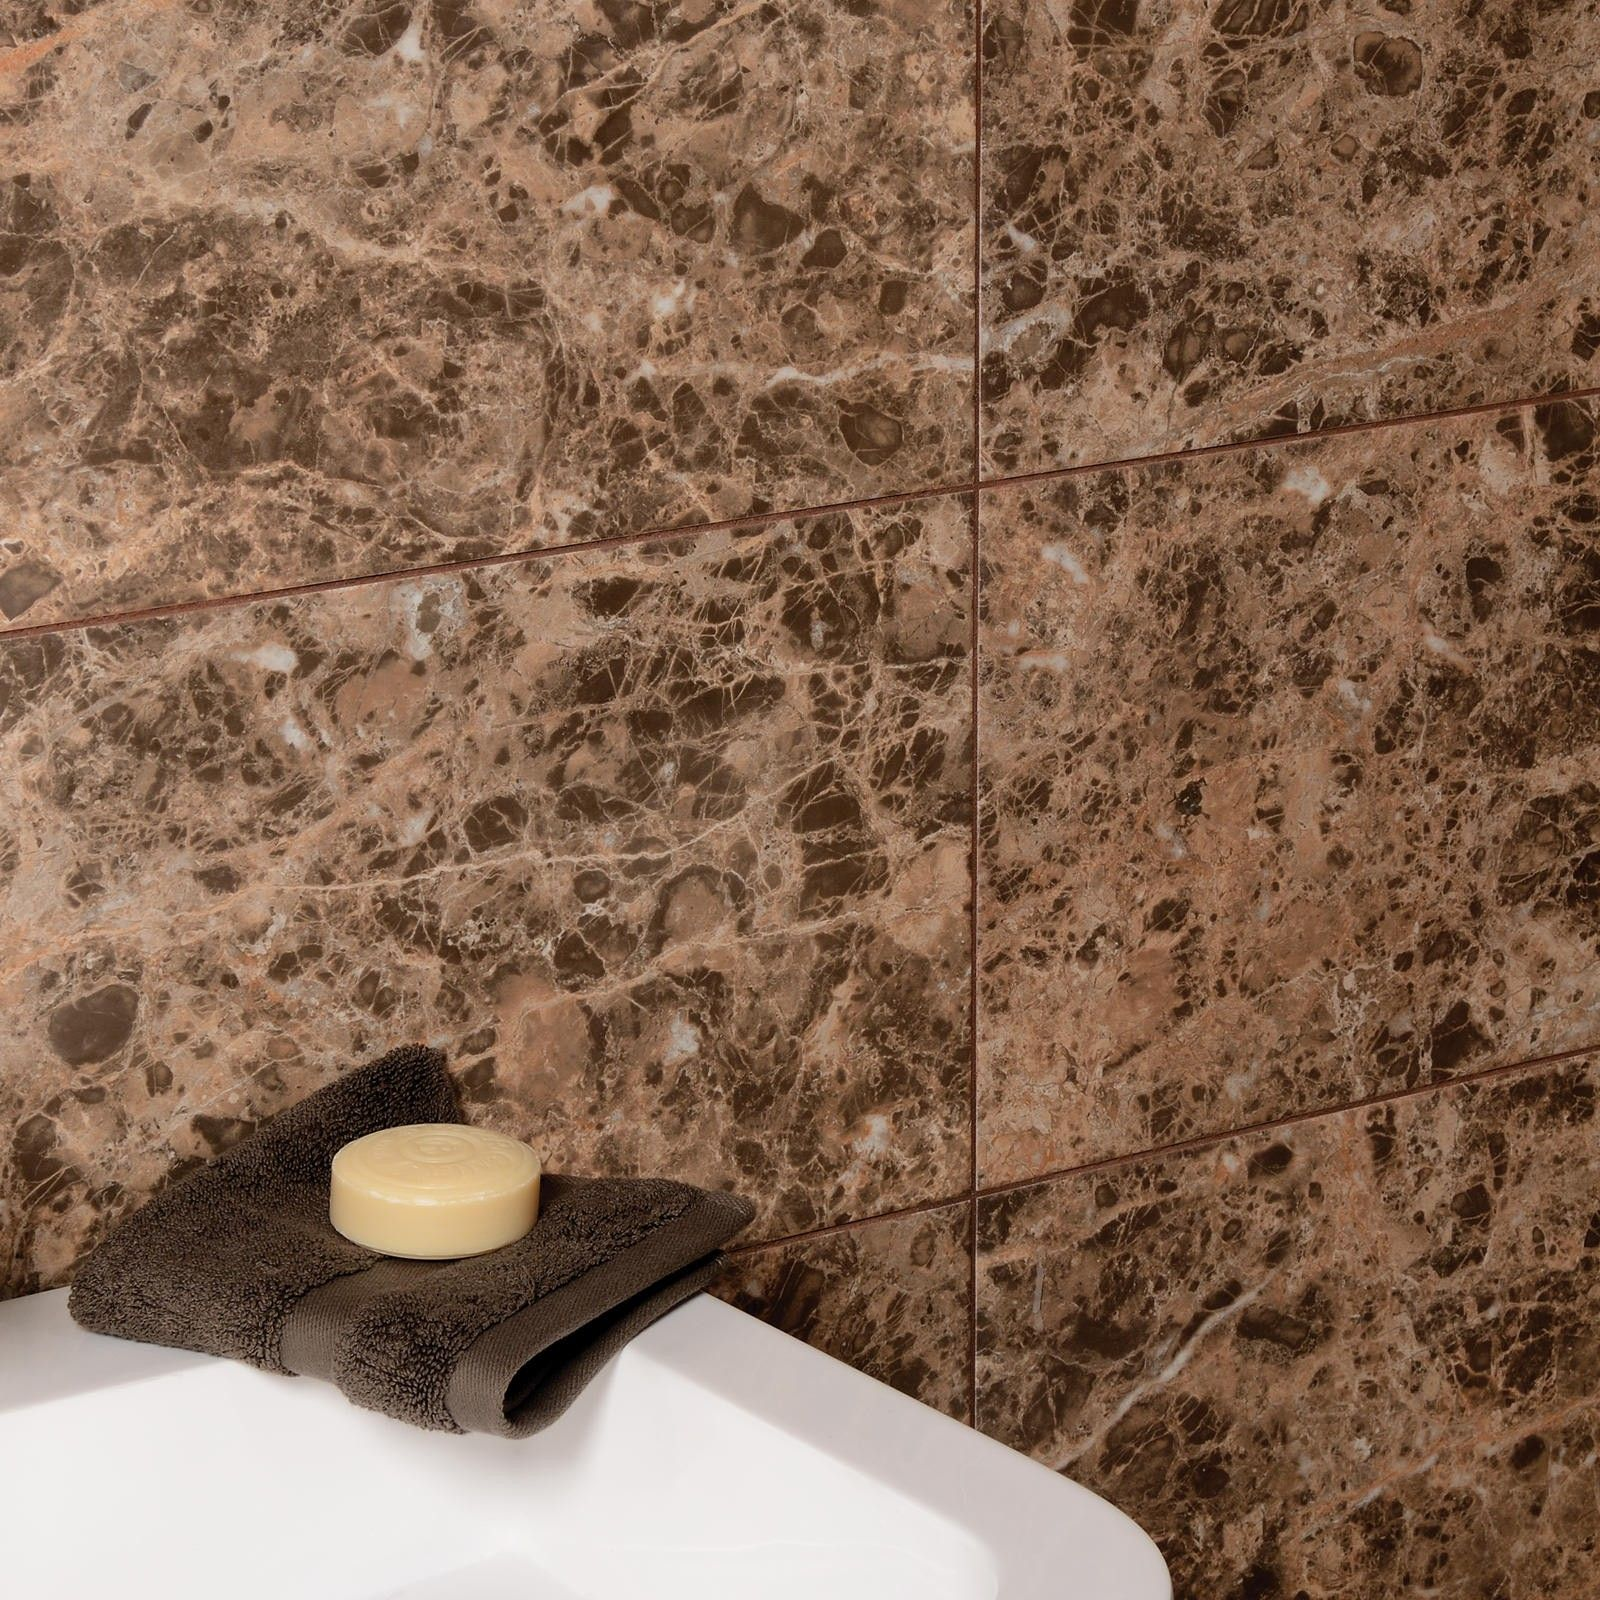 Emperador wall tile spring bathroom inspiration spring style a stone effect ceramic wall tile that offers realistic alternative to natural stone matching floor tiles also available doublecrazyfo Images